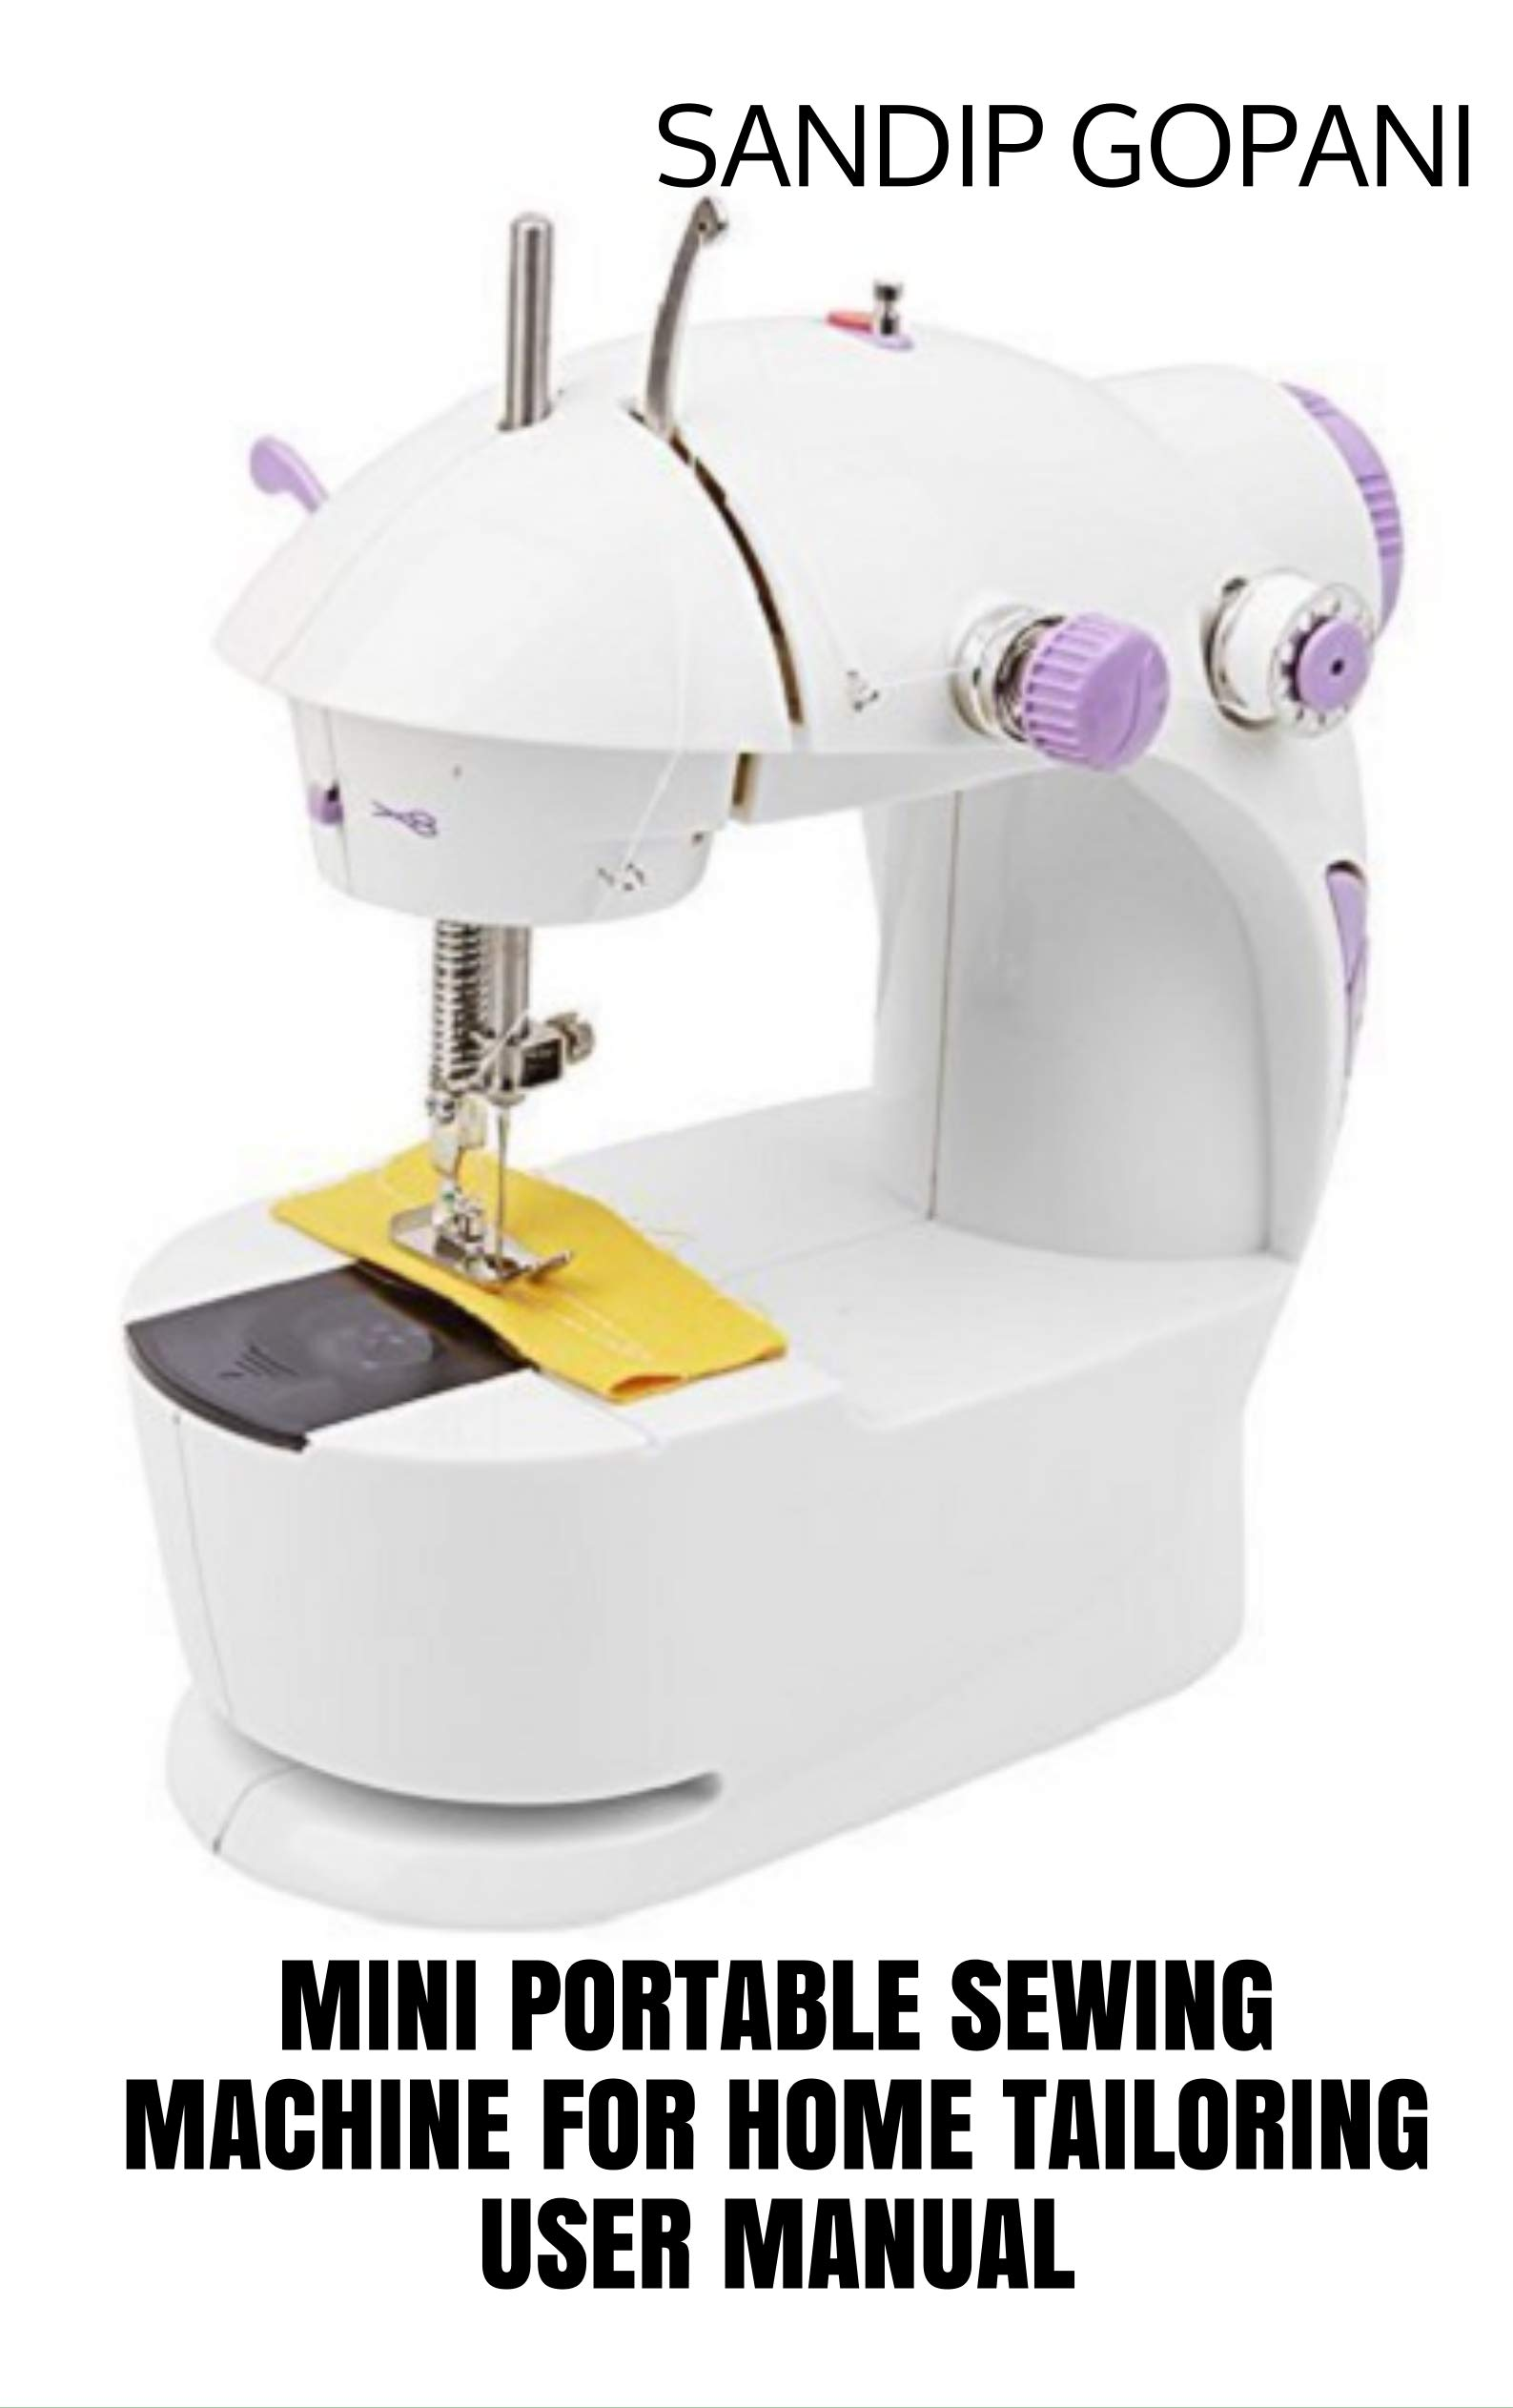 User Manual: Mini Portable Sewing Machine for Home Tailoring